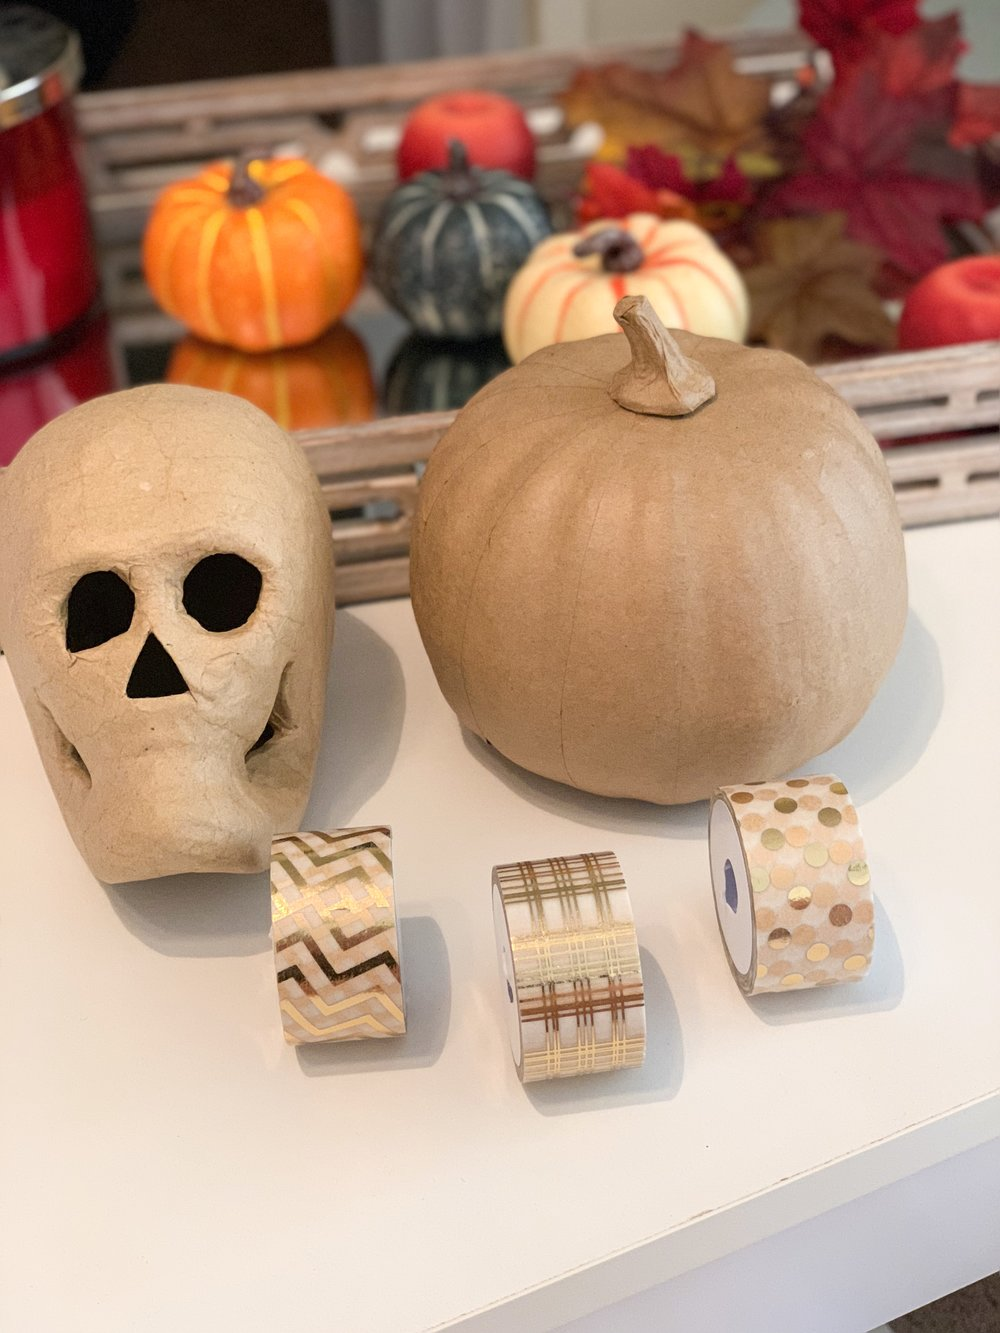 WASHI TAPE SKULL AND PUMPKIN:    1 Paper Skull and Pumpkin    Washi Tape